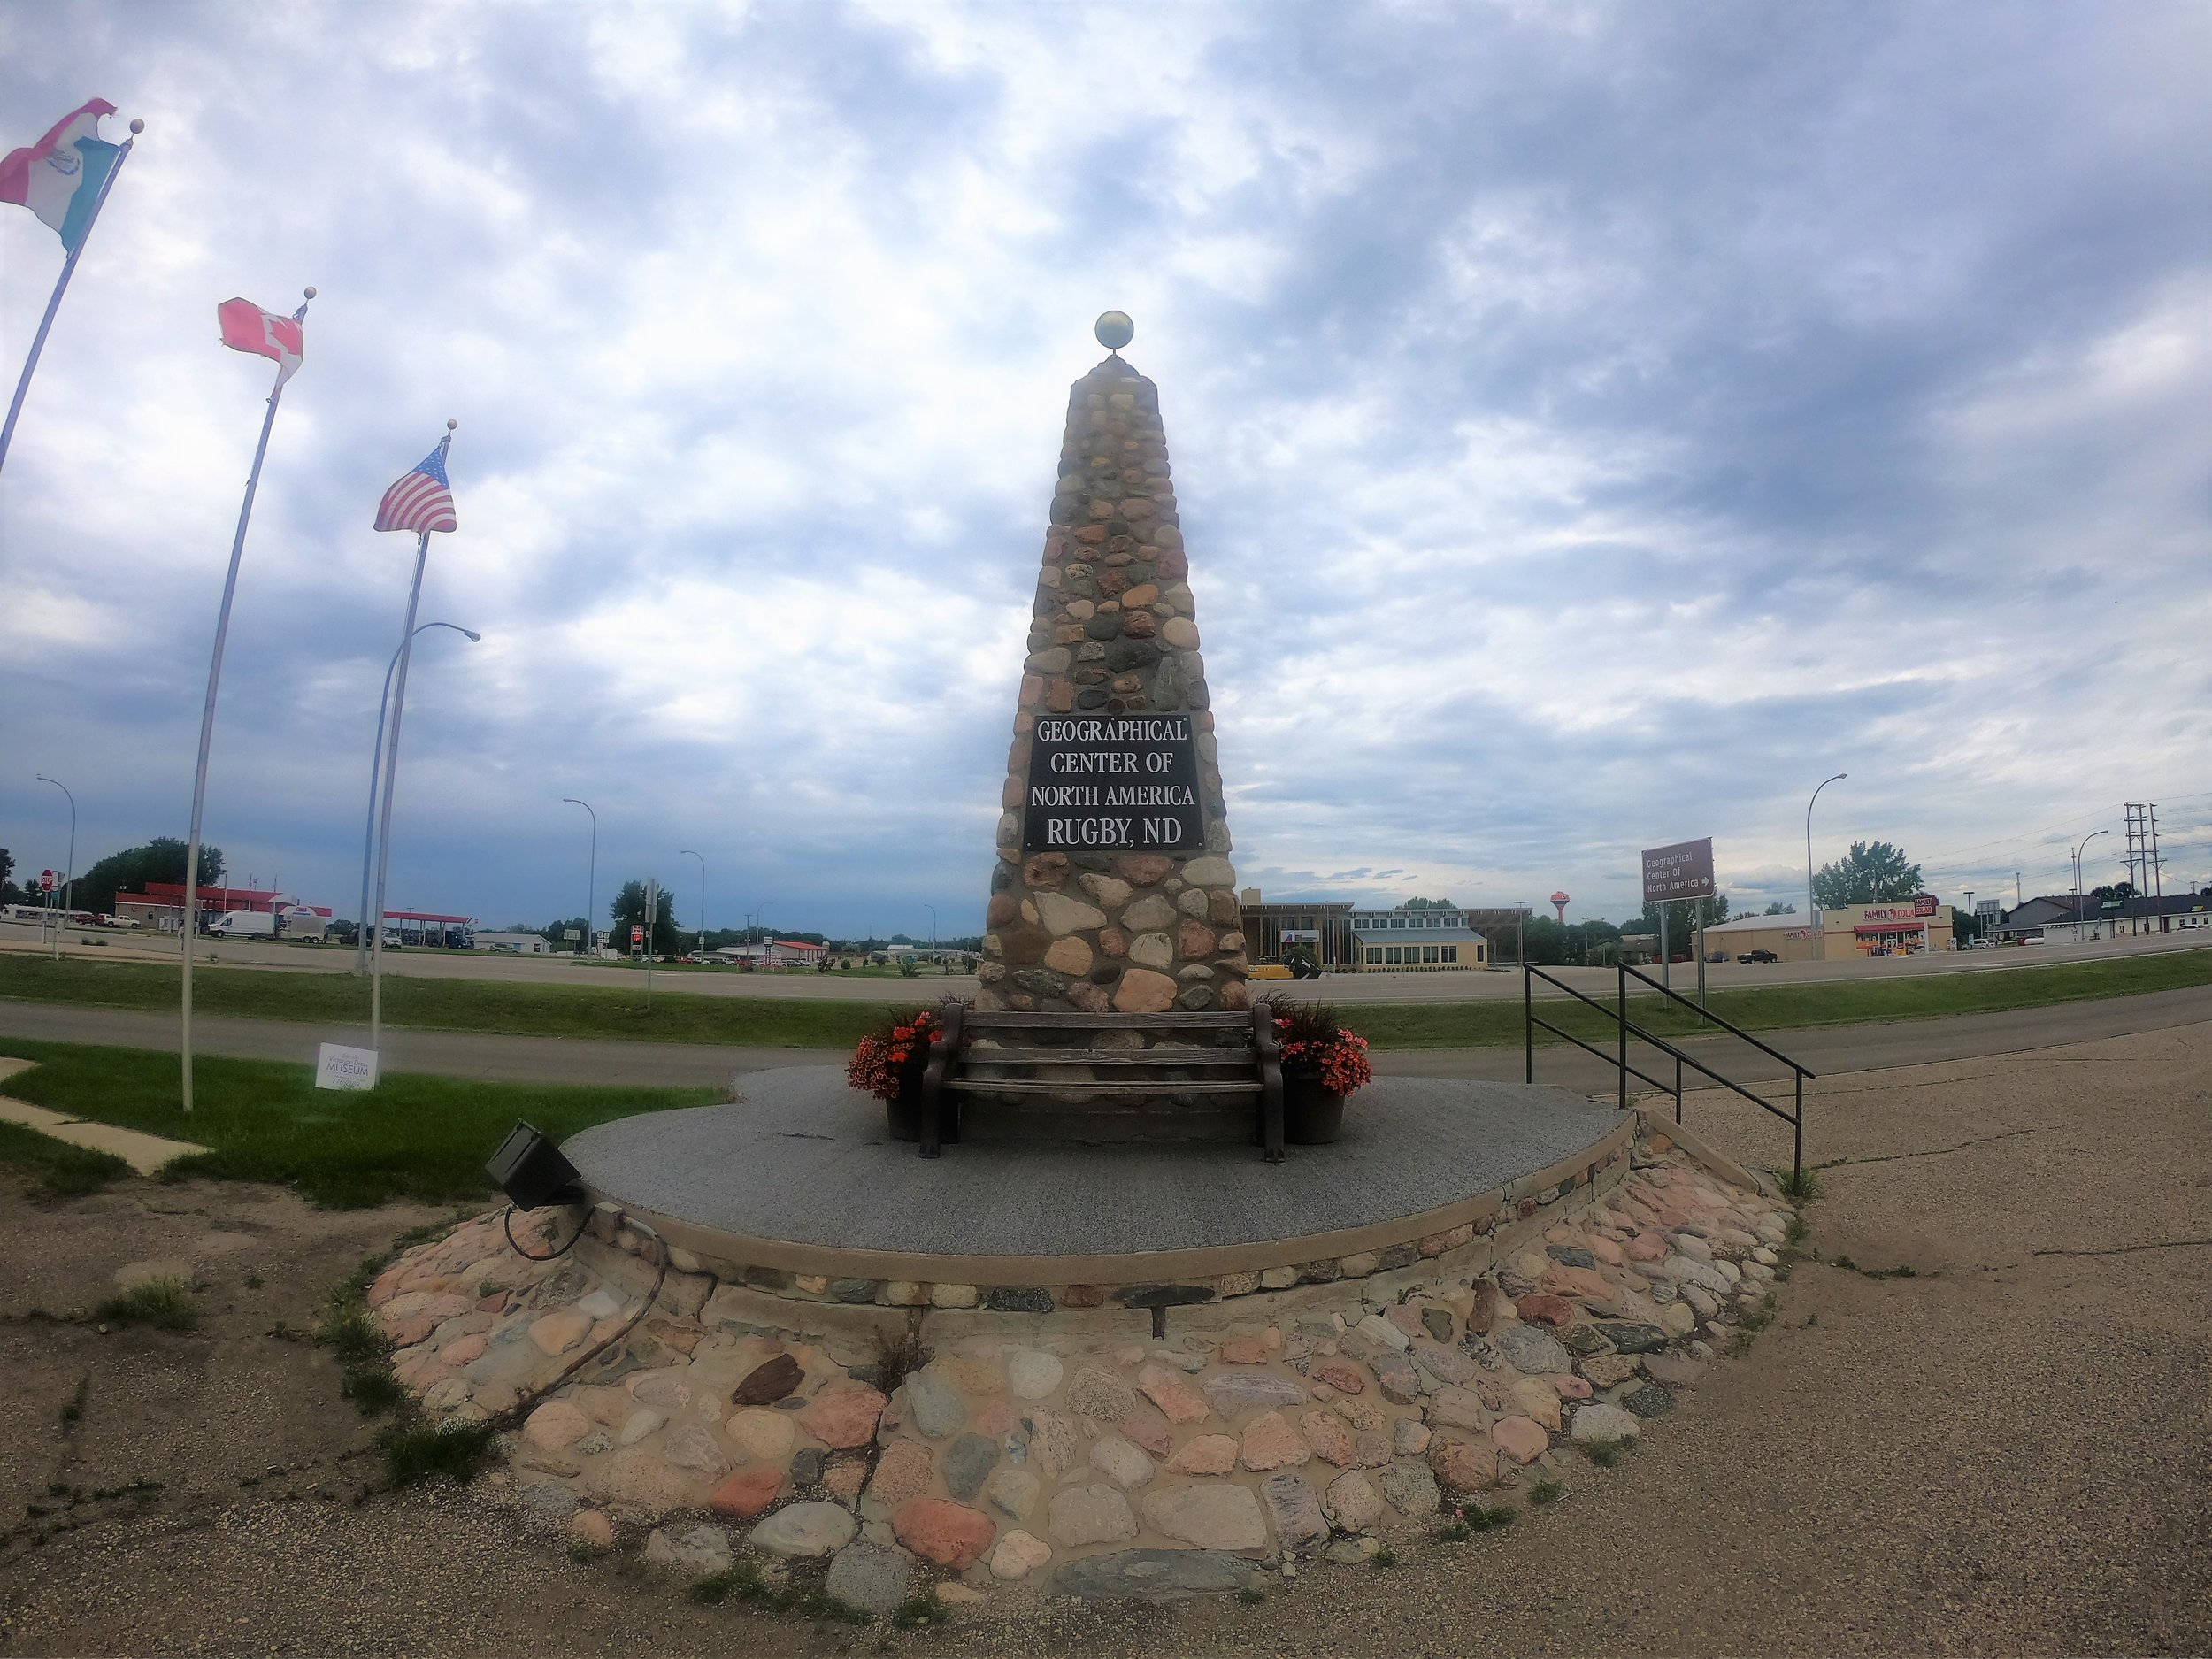 Geographical Center of North America Monument in Rugby, North Dakota